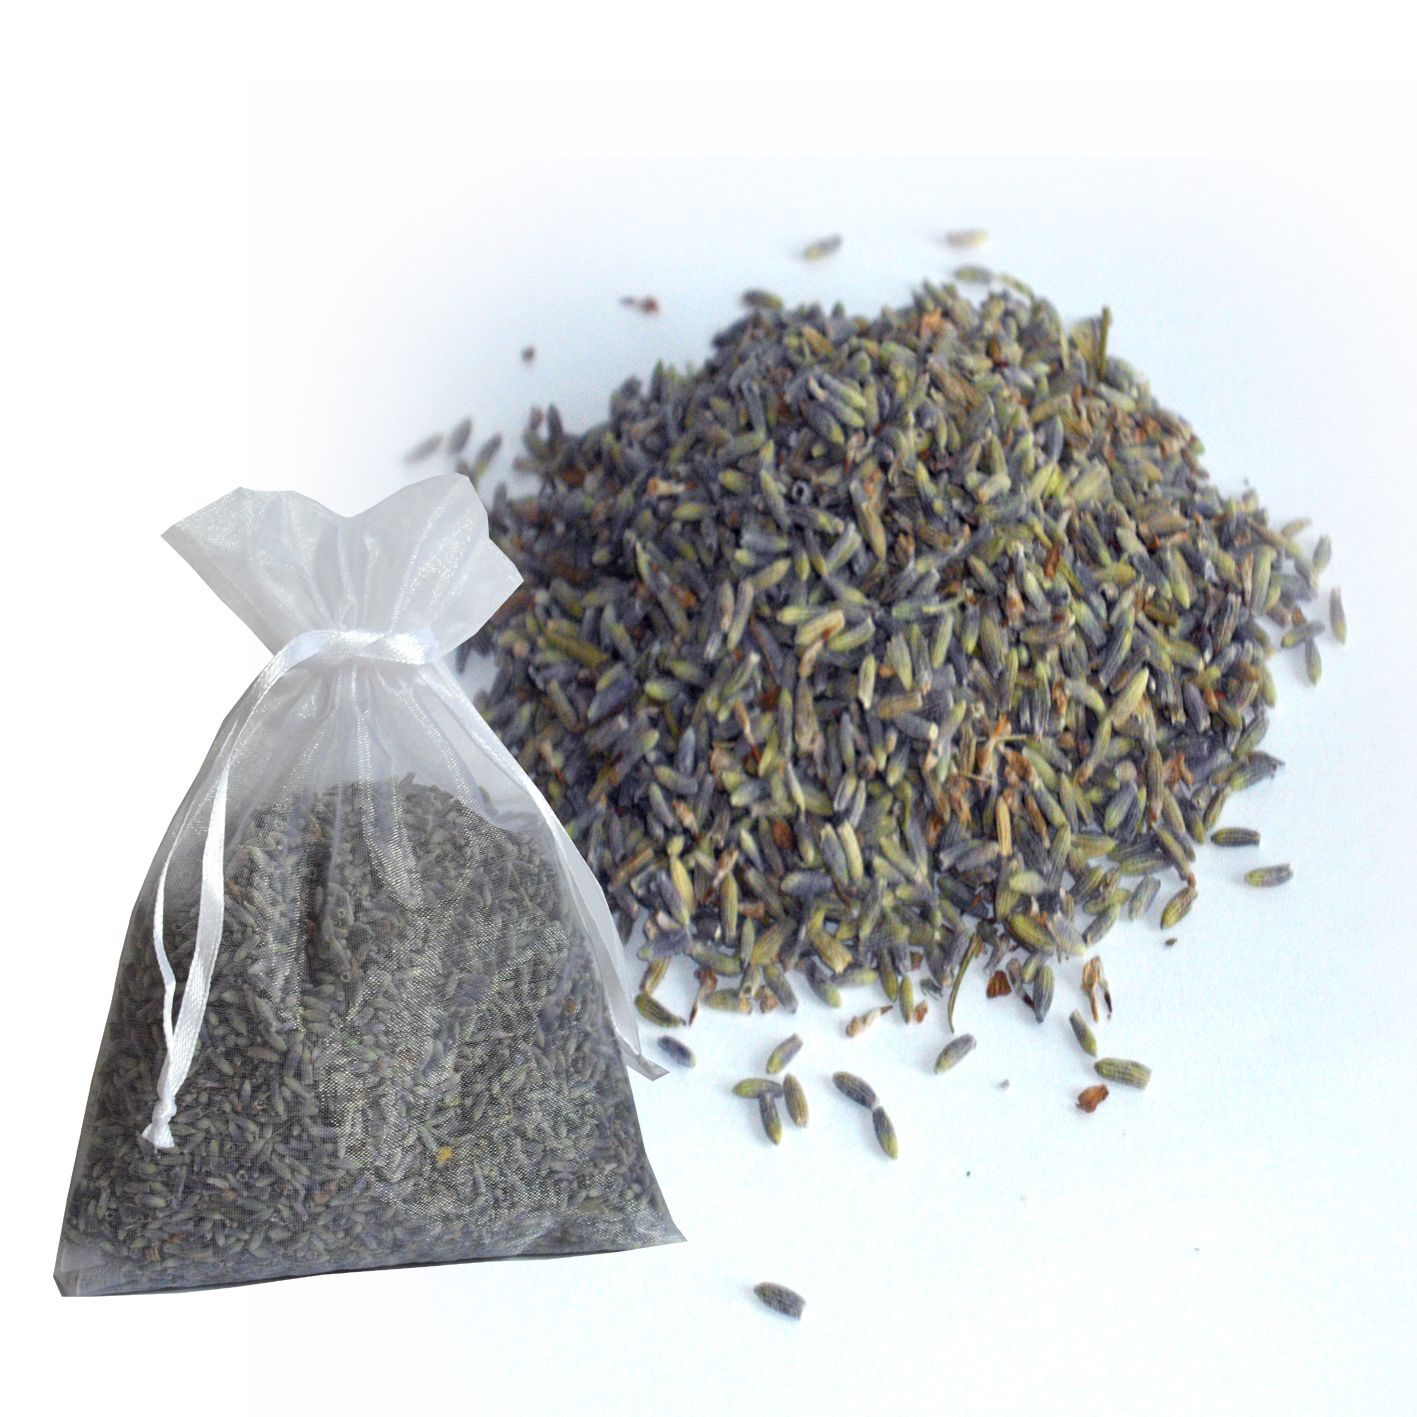 Dried Lavender has many uses, one being to freshen your clothes in a wardrobe or drawer